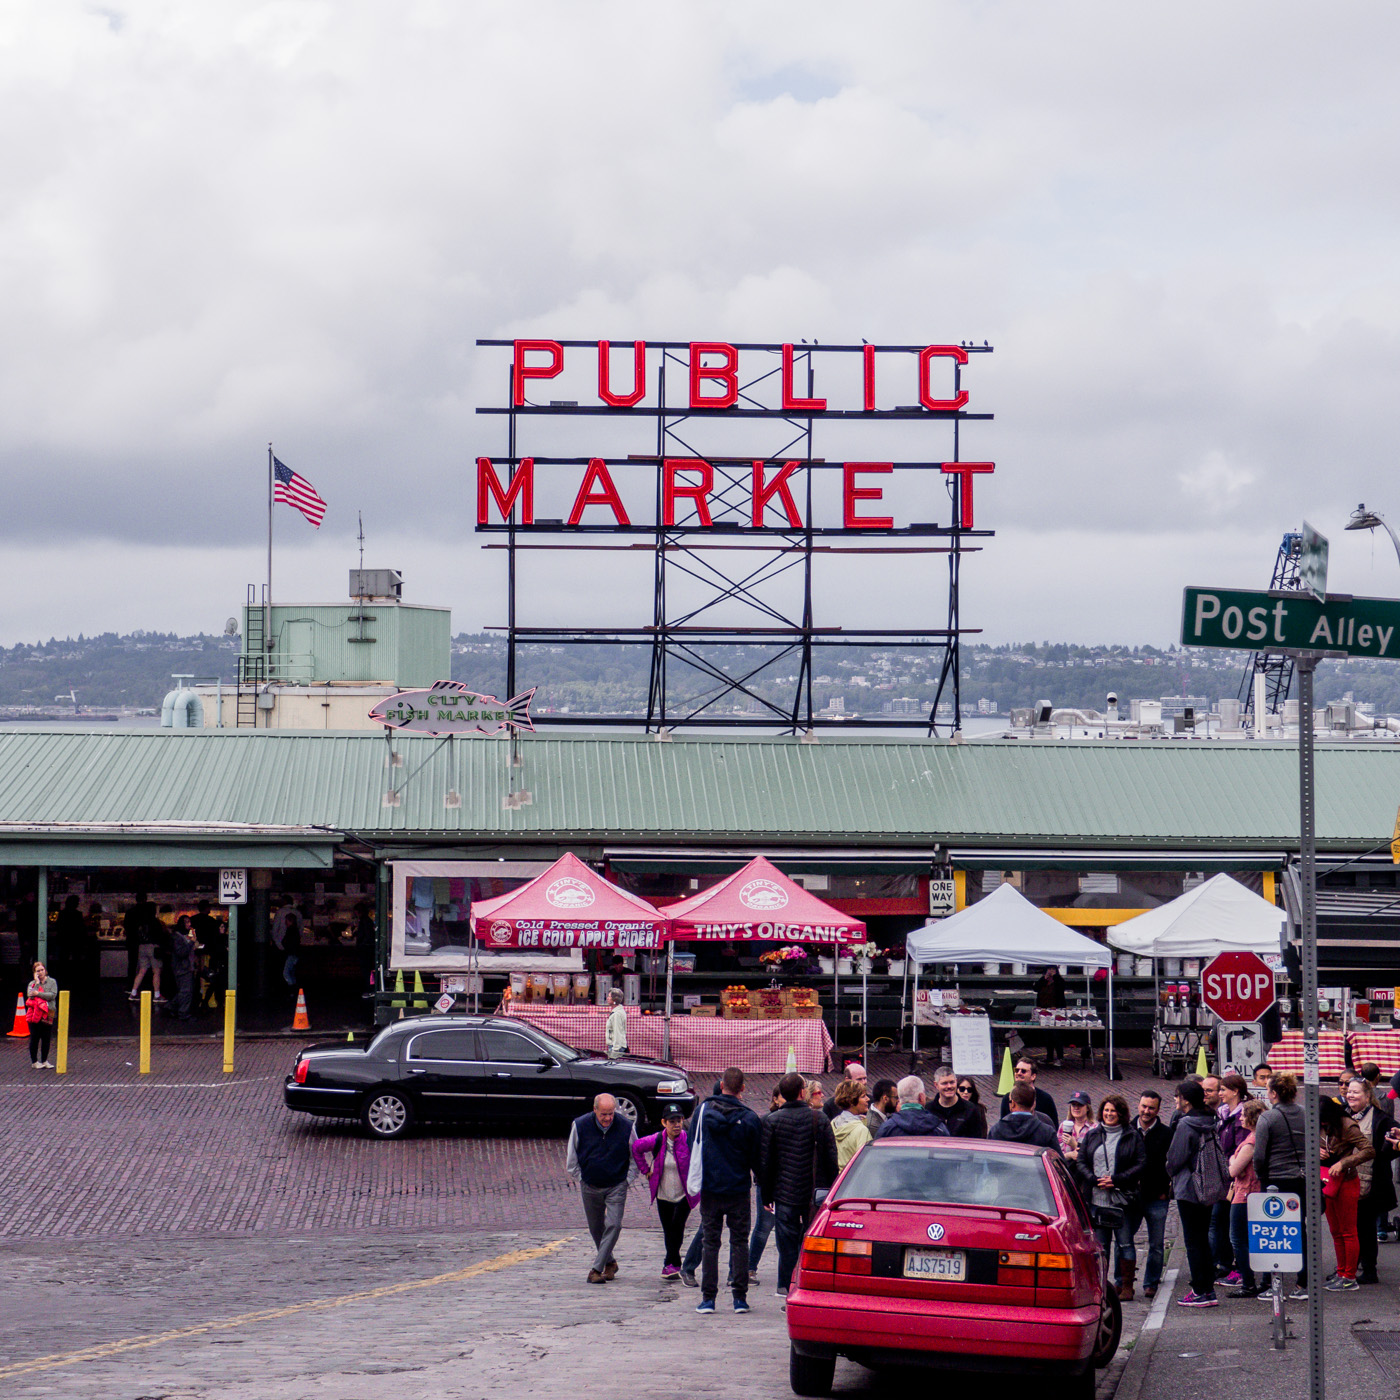 View of the infamous Pike Place Market sign in Seattle, WA